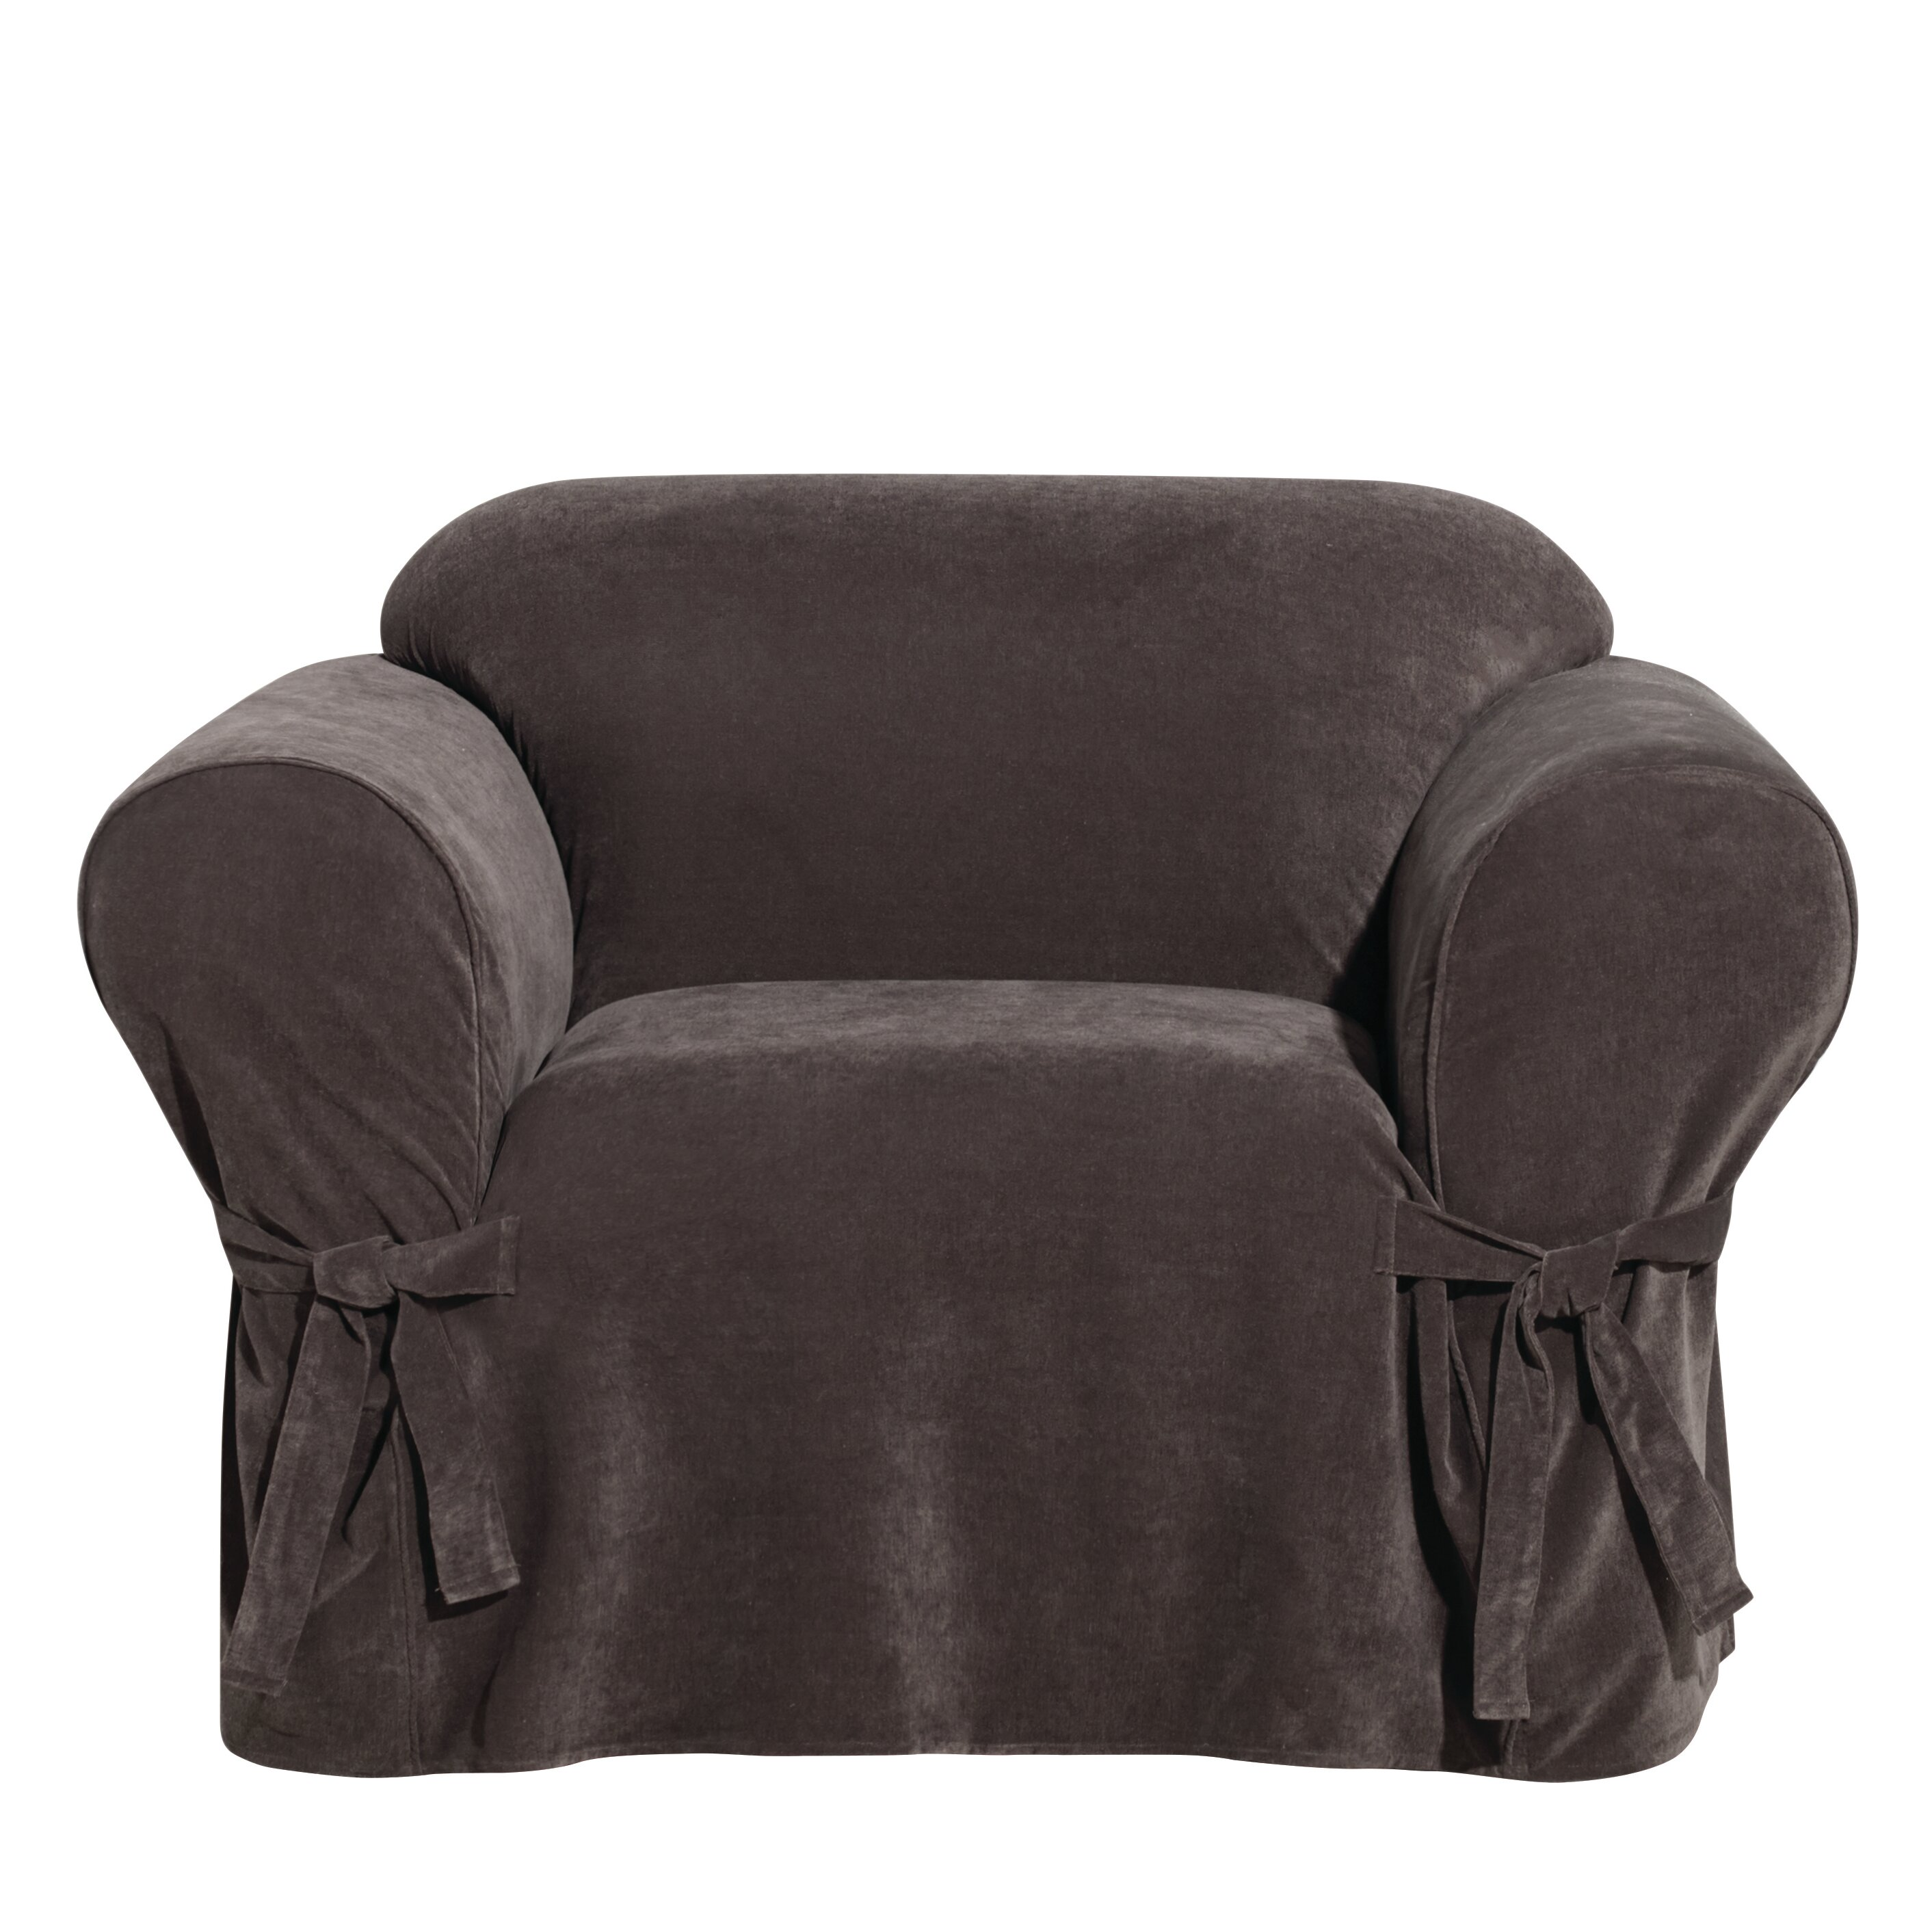 Chenille Armchair: Sure Fit Everyday Chenille Armchair Skirted Slipcover